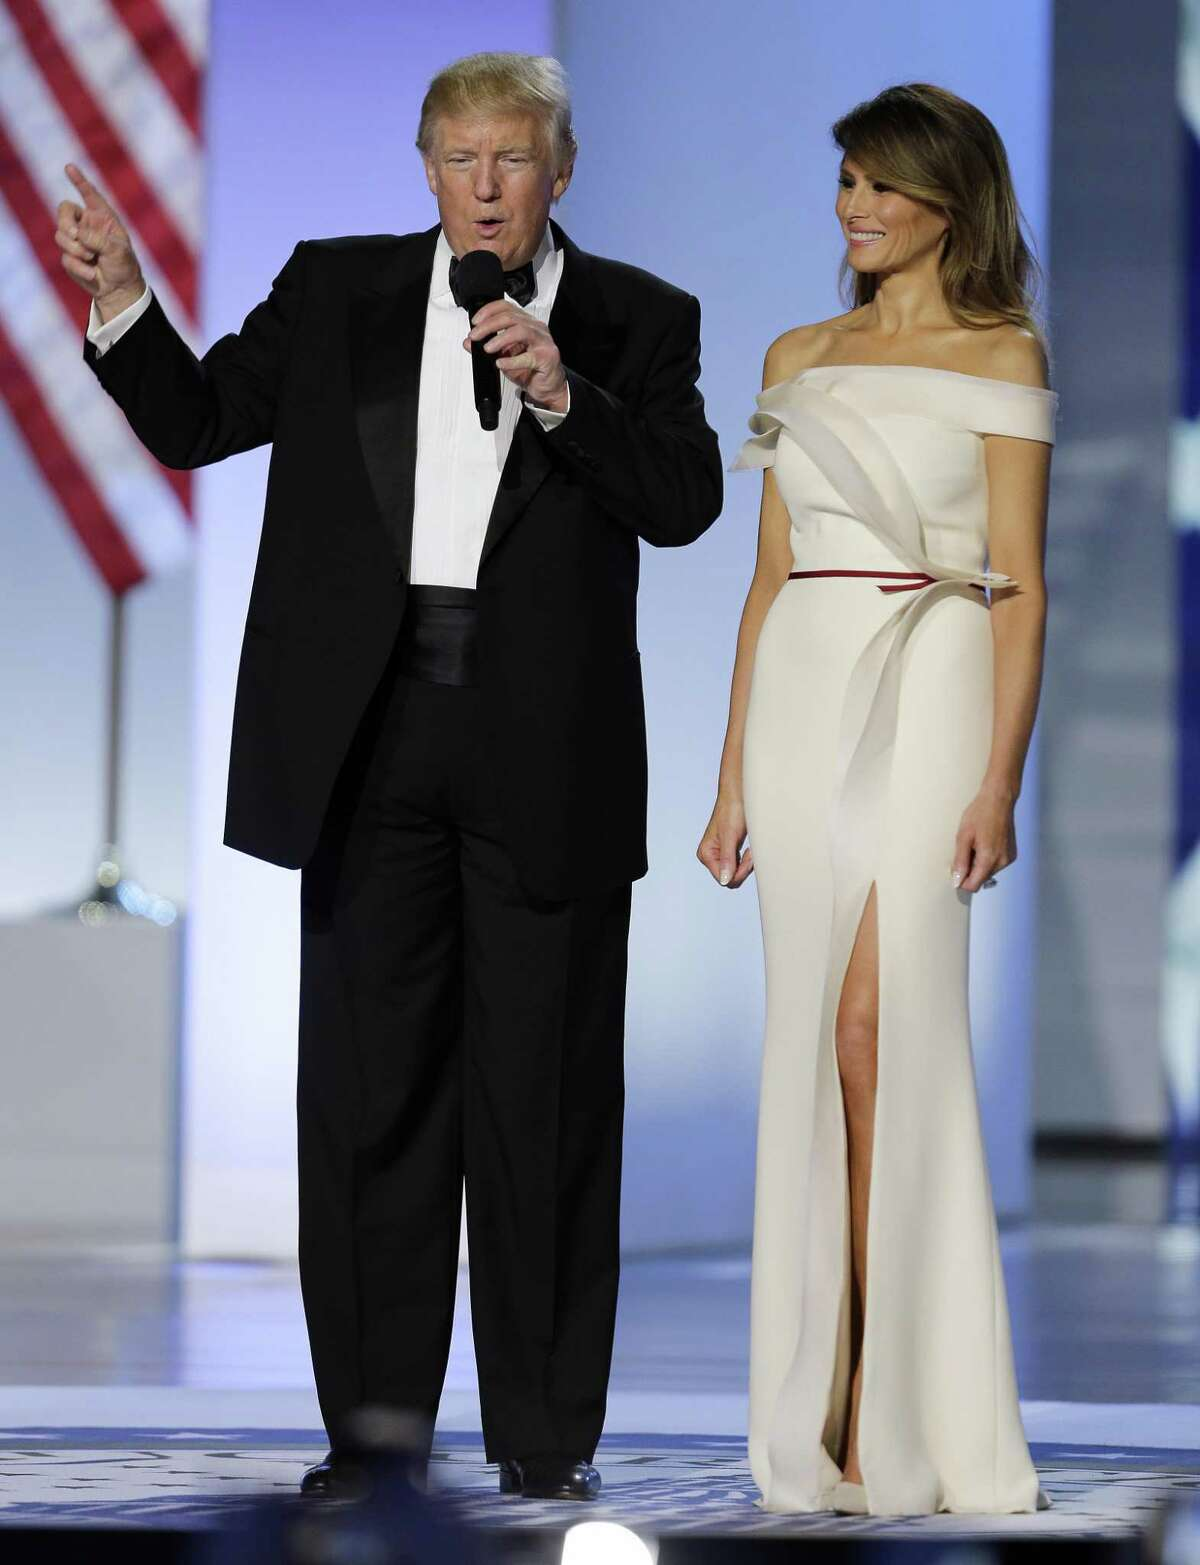 The election of Donald Trump, shown here with first lady Melania during his inauguration last January, has spawned publication of dozens of